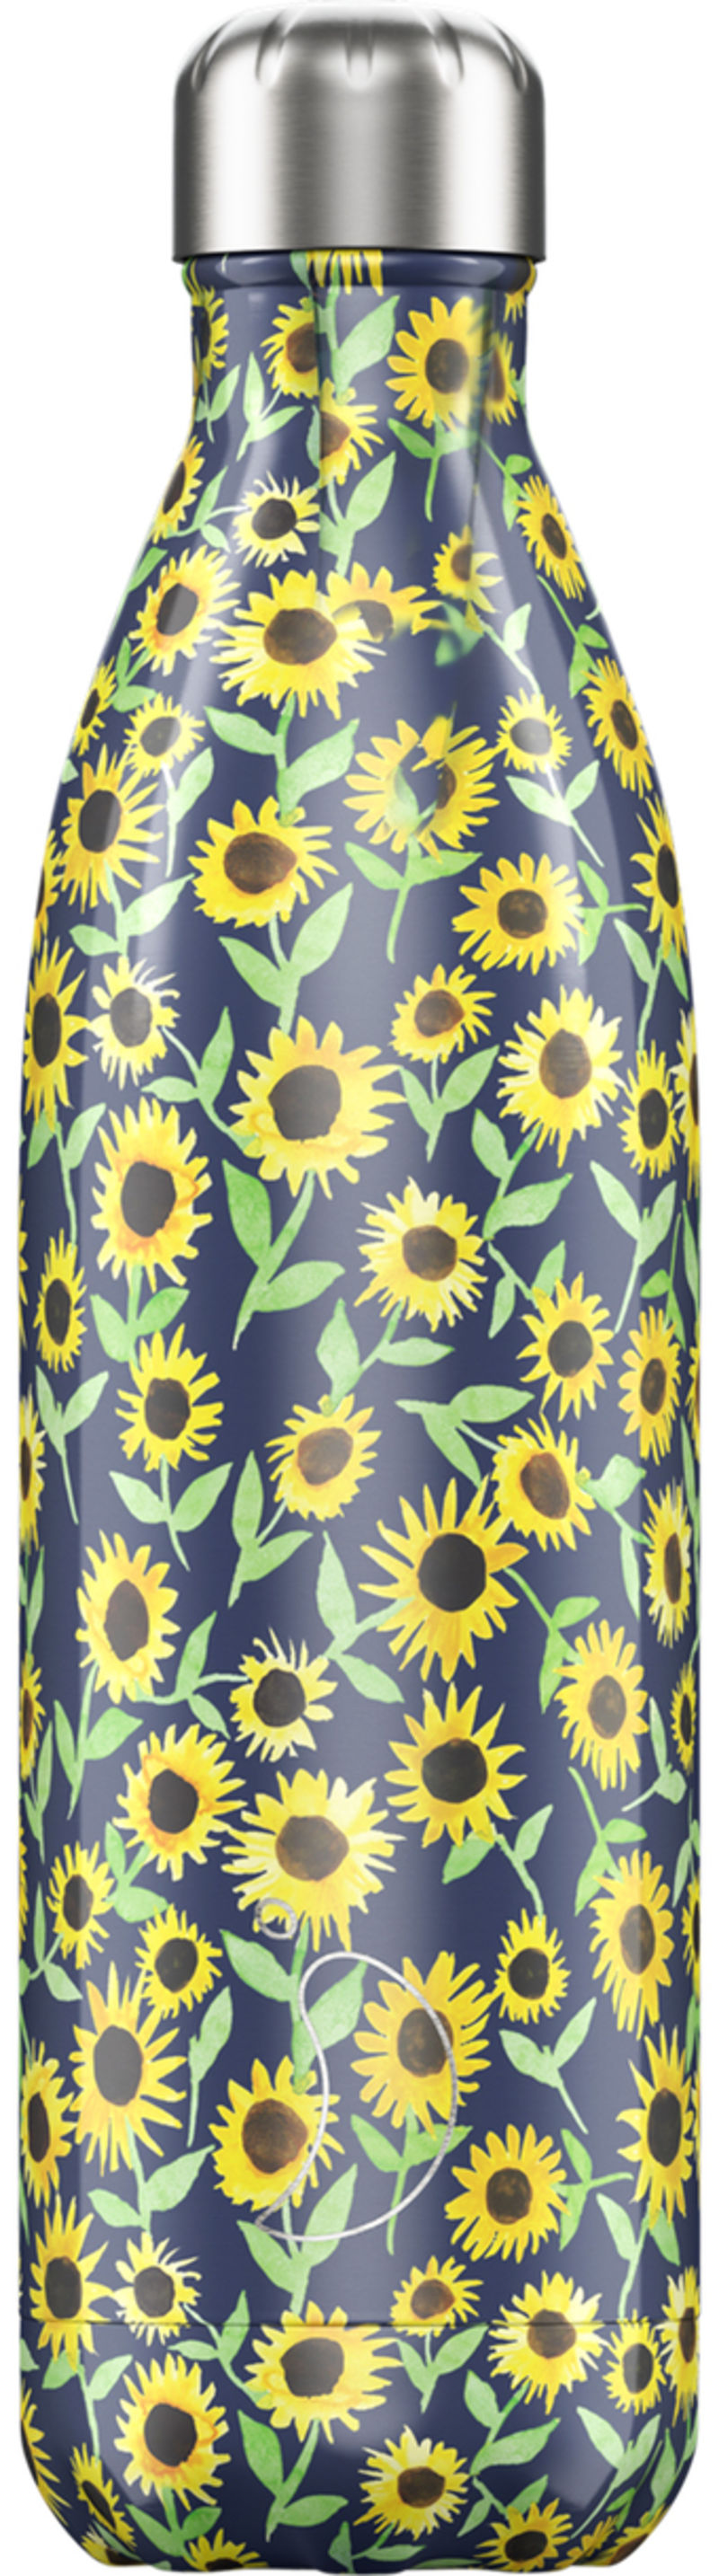 BOTELA INOX GIRASOLES 750ml